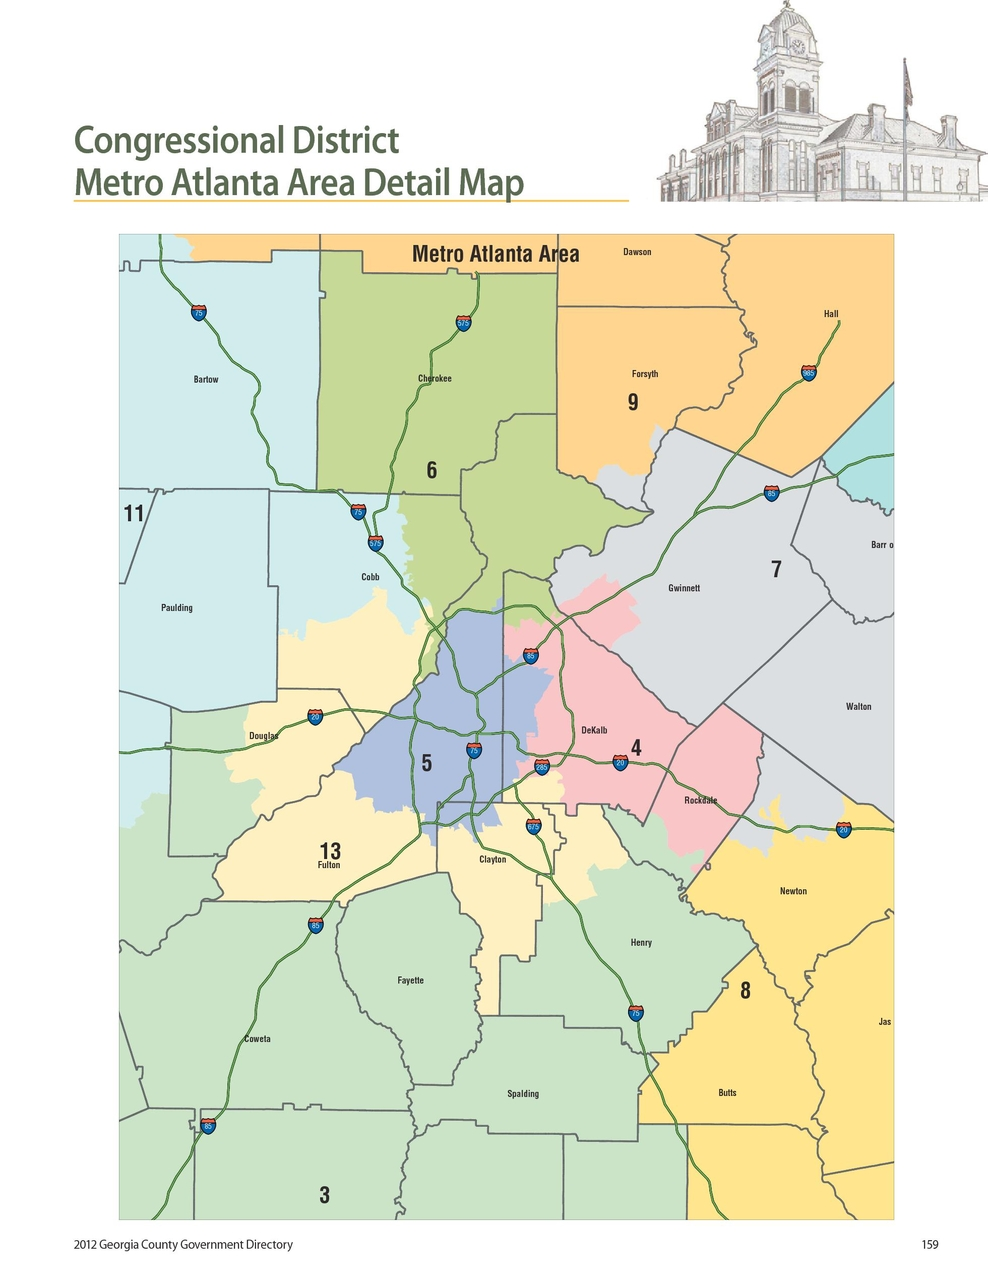 Georgia County Government 2012 Directory